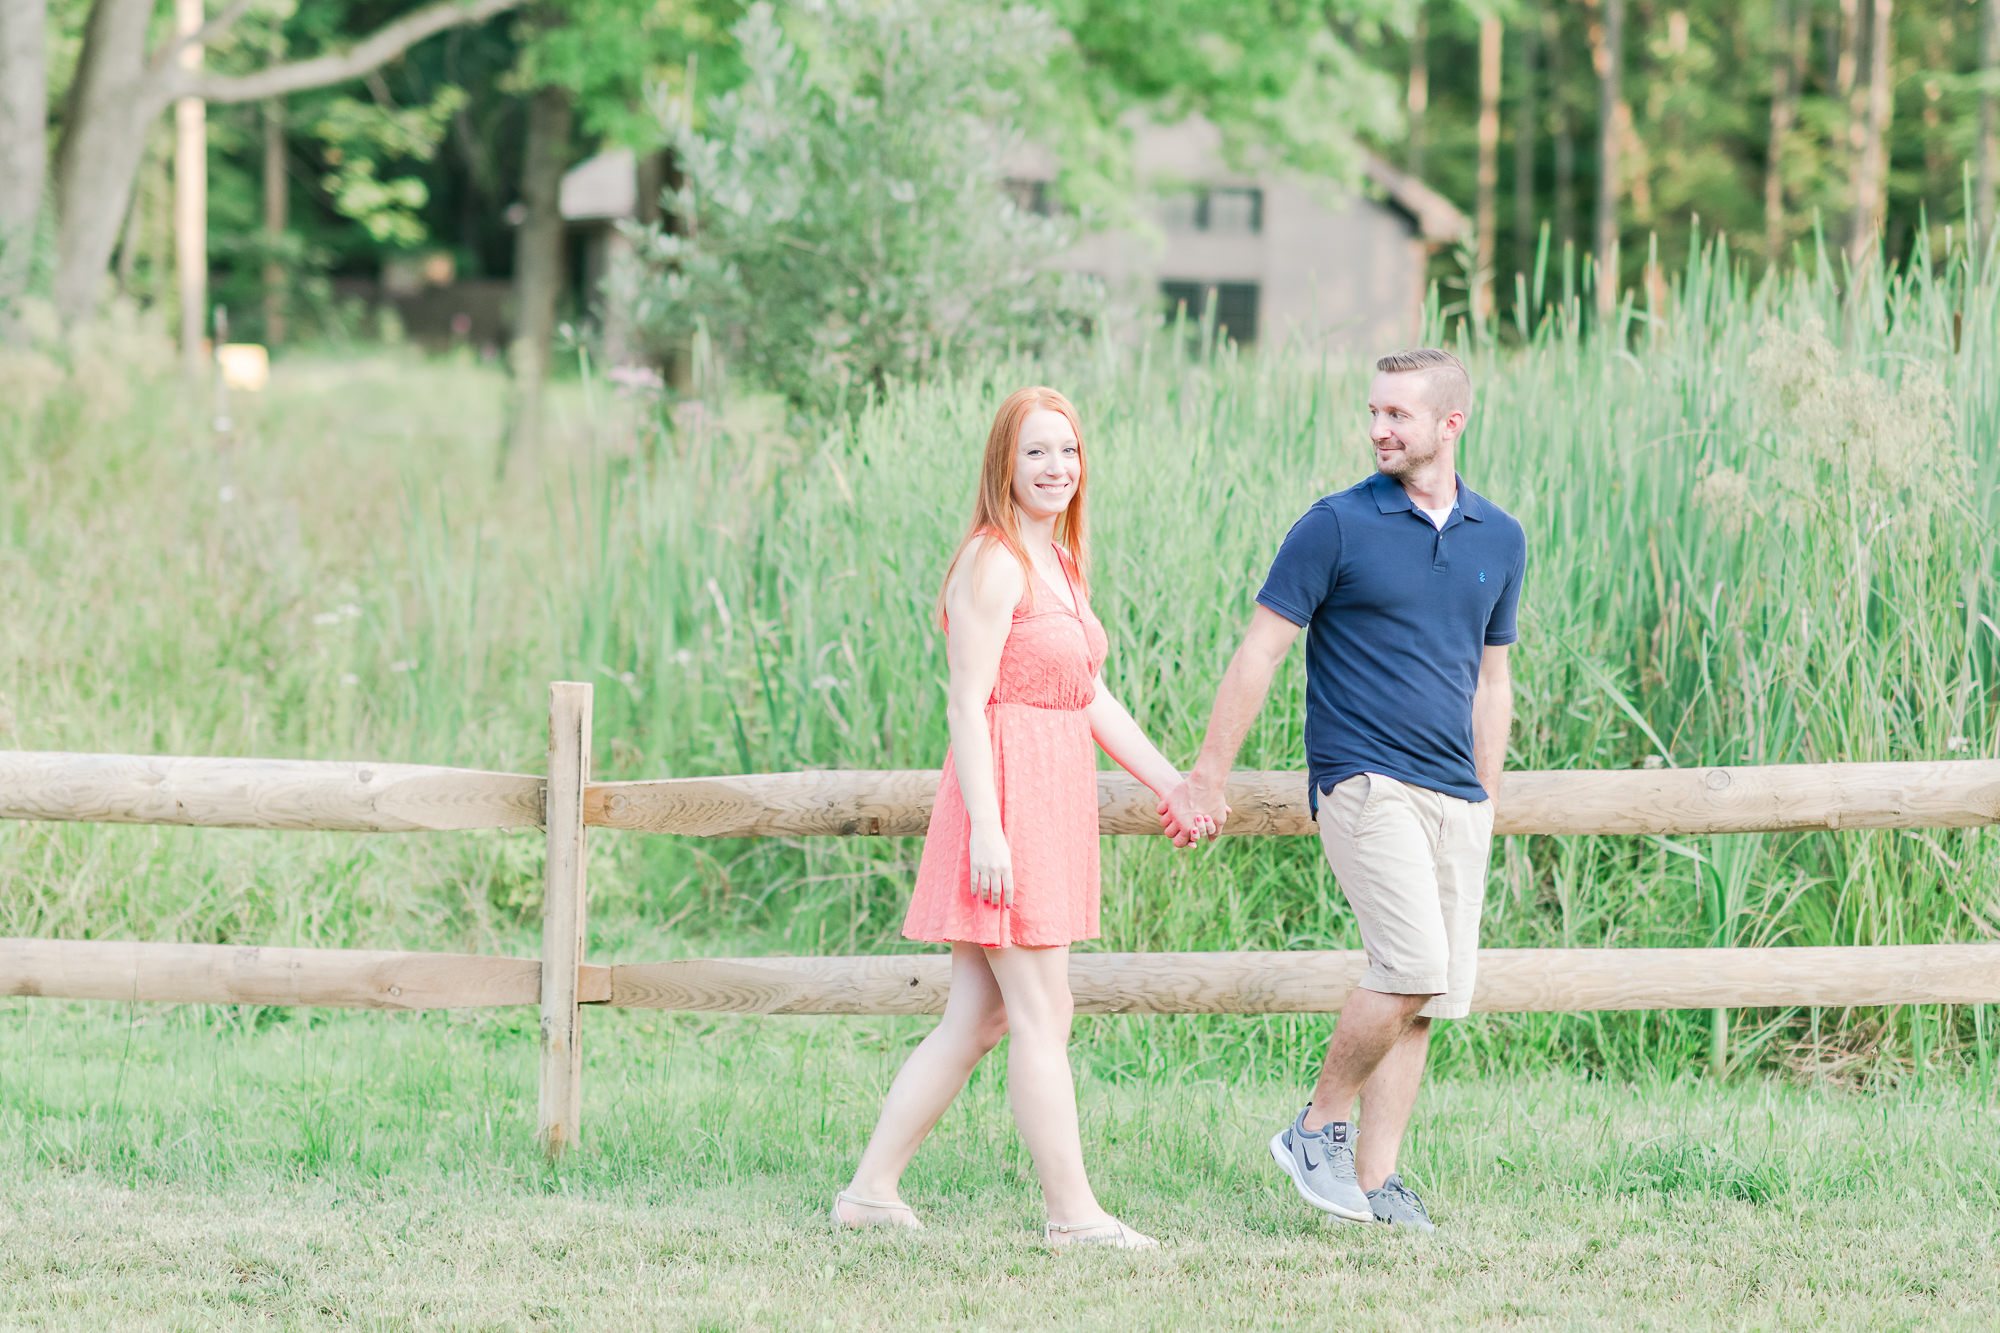 AB Favorites_Katy+Brian_Engagement Session_Brecksville Reservation_Brecksville_Ohio-6.jpg